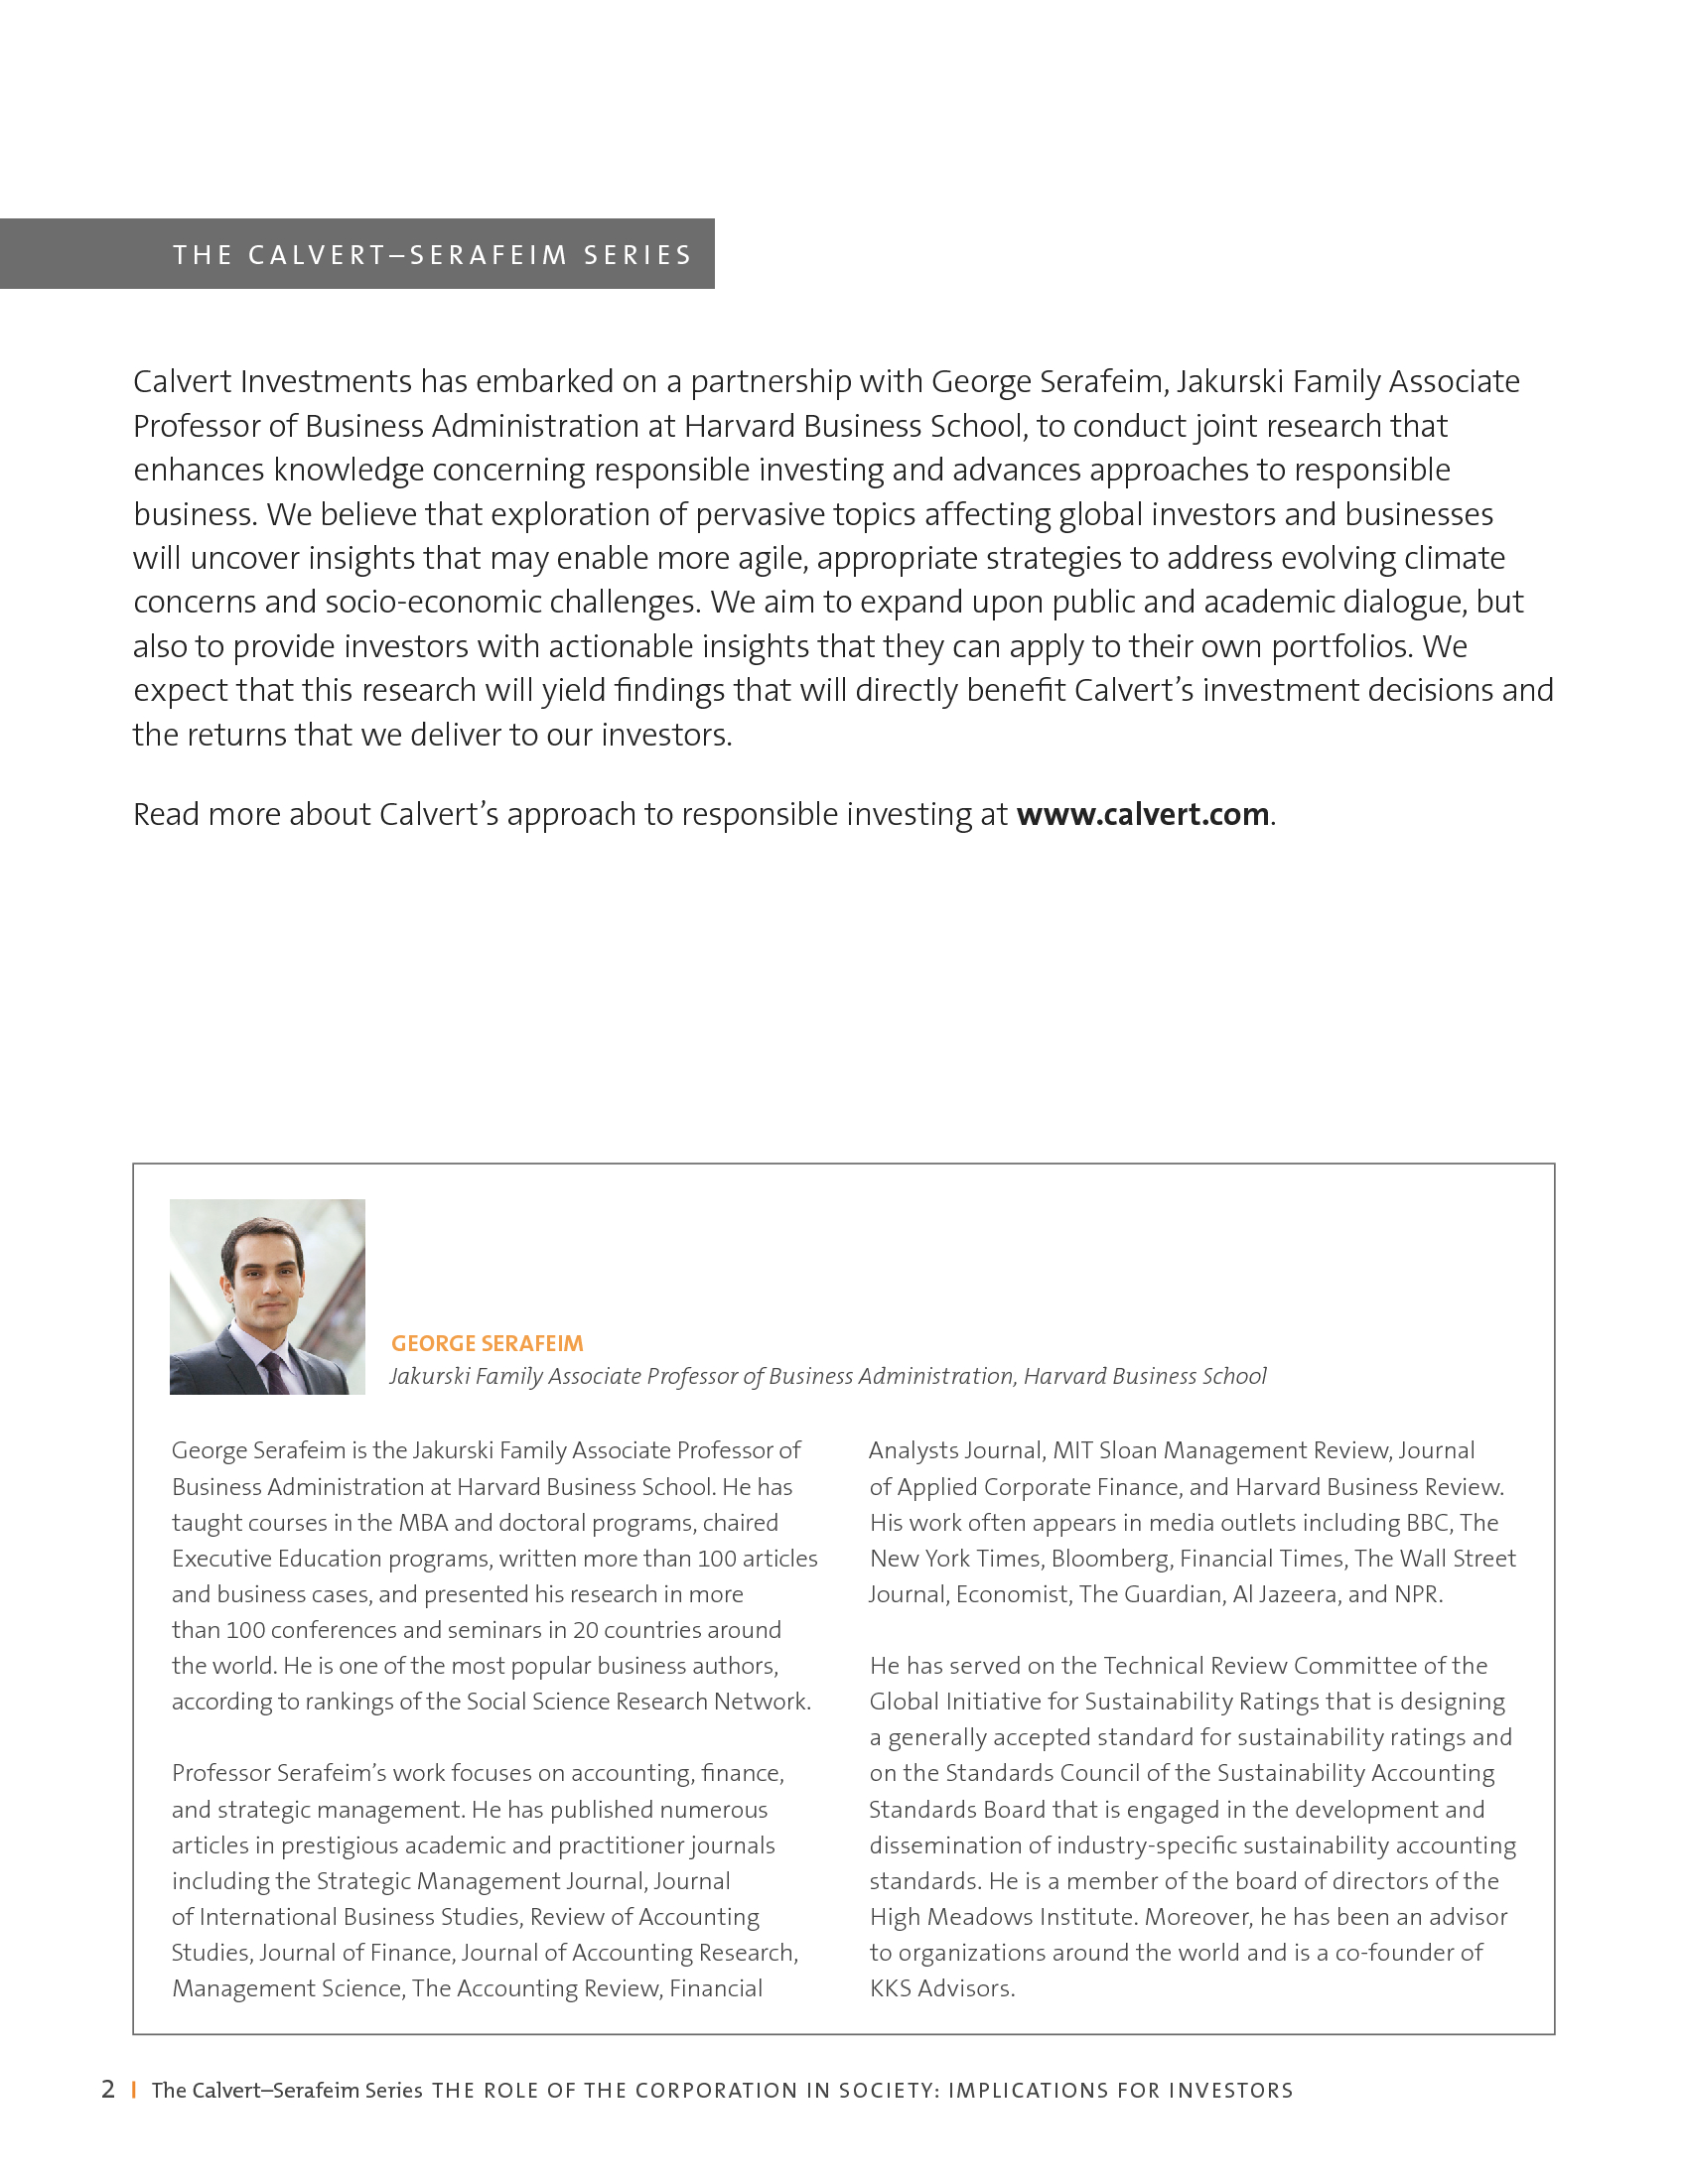 Advisorselect - The Evolving Role Of The Corporation In